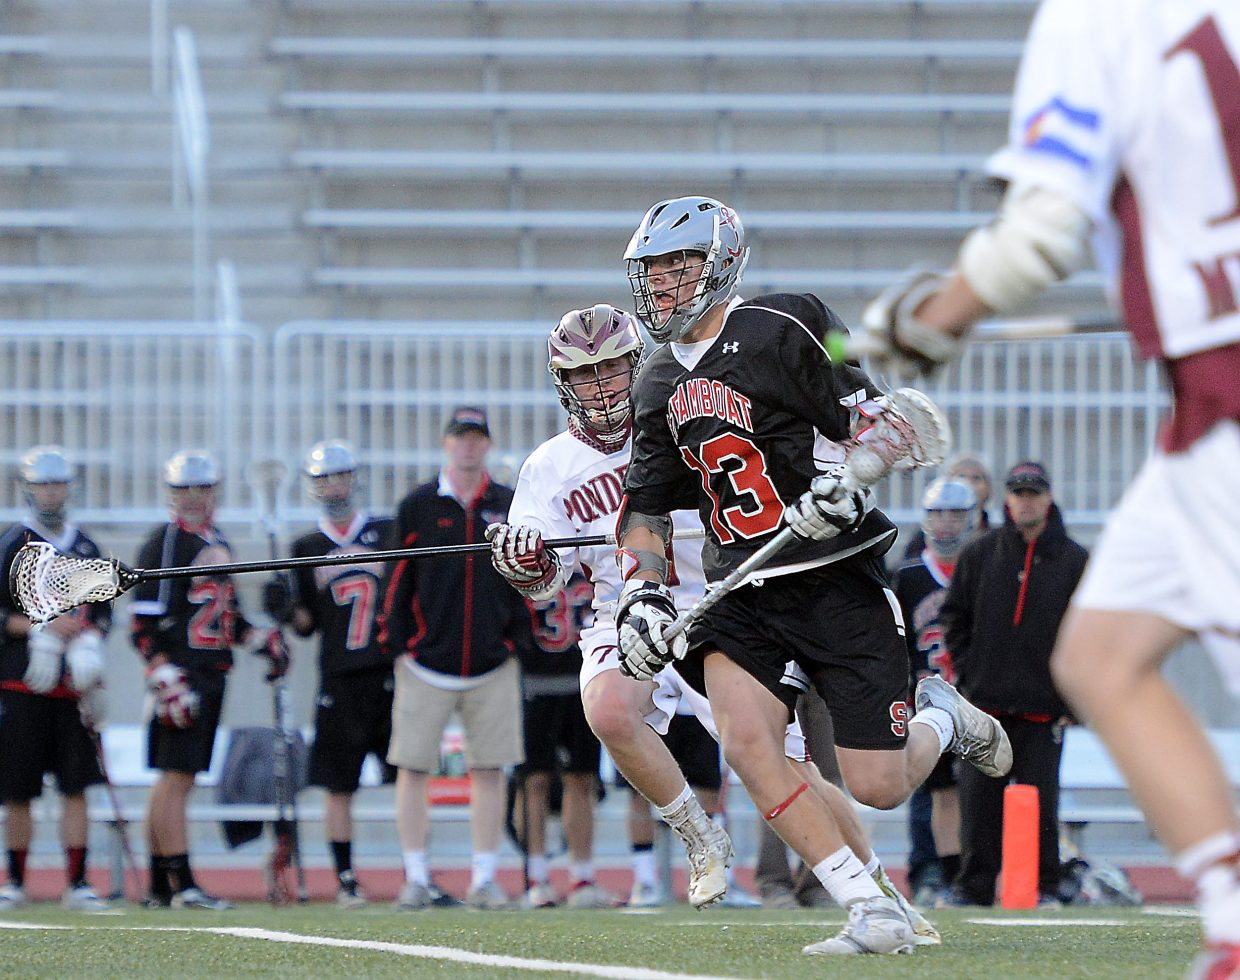 Steamboat's Jackson Perry races across the midfield Wednesday in the state tournament semifinal game.